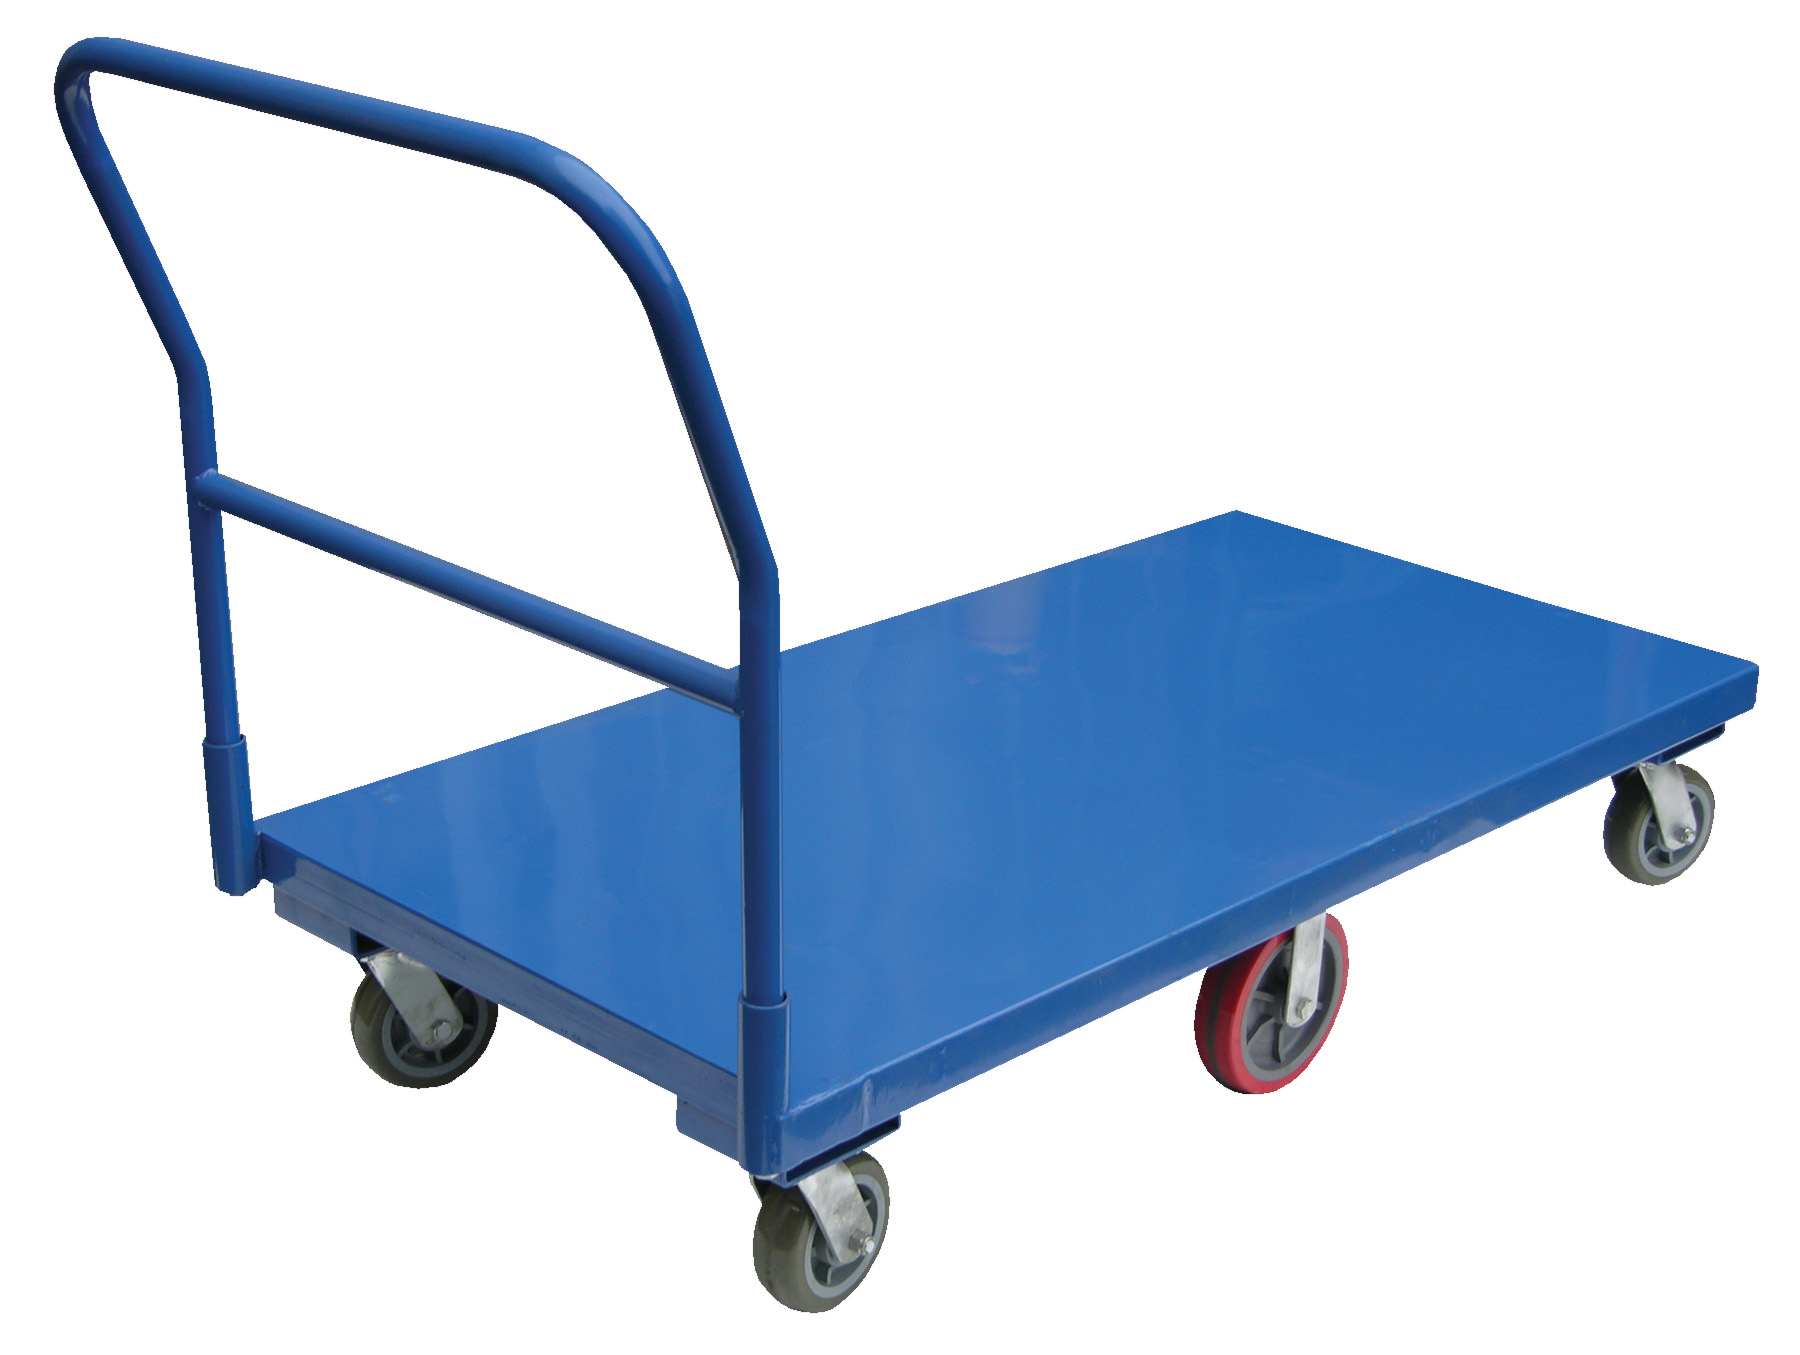 Vestil FLAT-C Flat Bed Cart